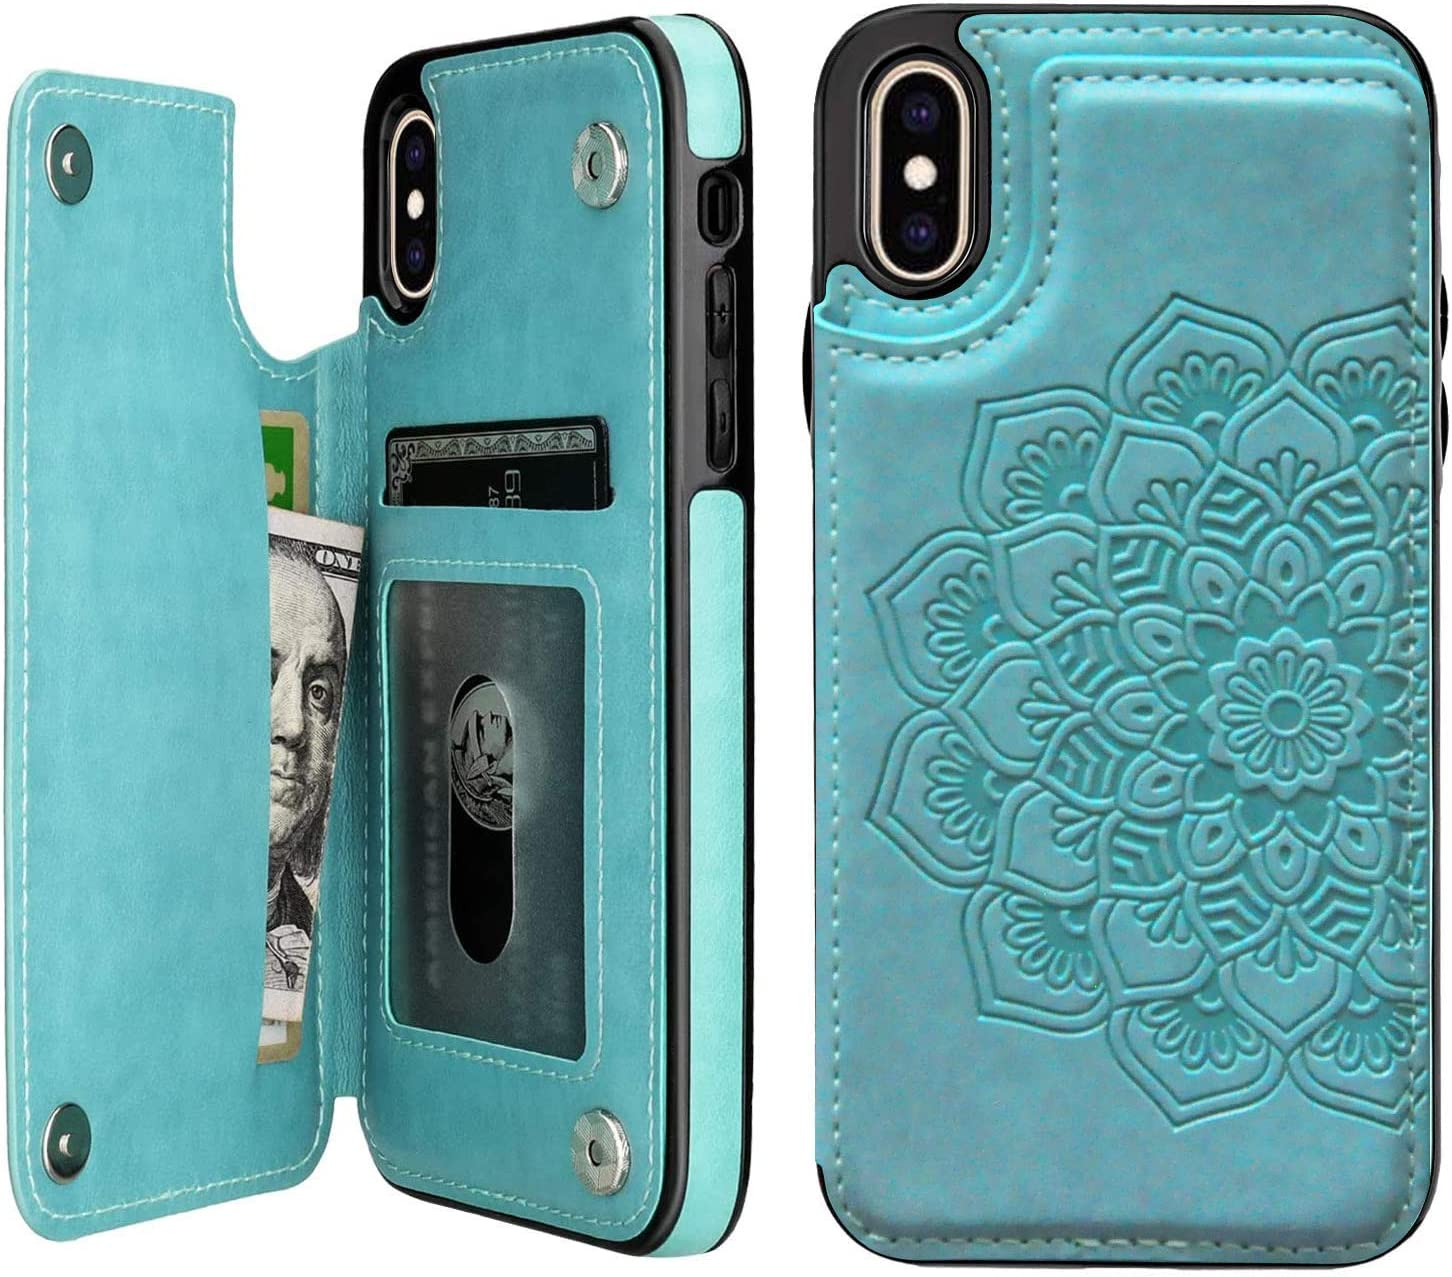 Apucase iPhone X Case/iPhone Xs Case,X/Xs Wallet Case Credit Card Holder Case,Protective Cover with Card Slot and Leather Case for iPhone X/Xs 5.8Inch (Green)